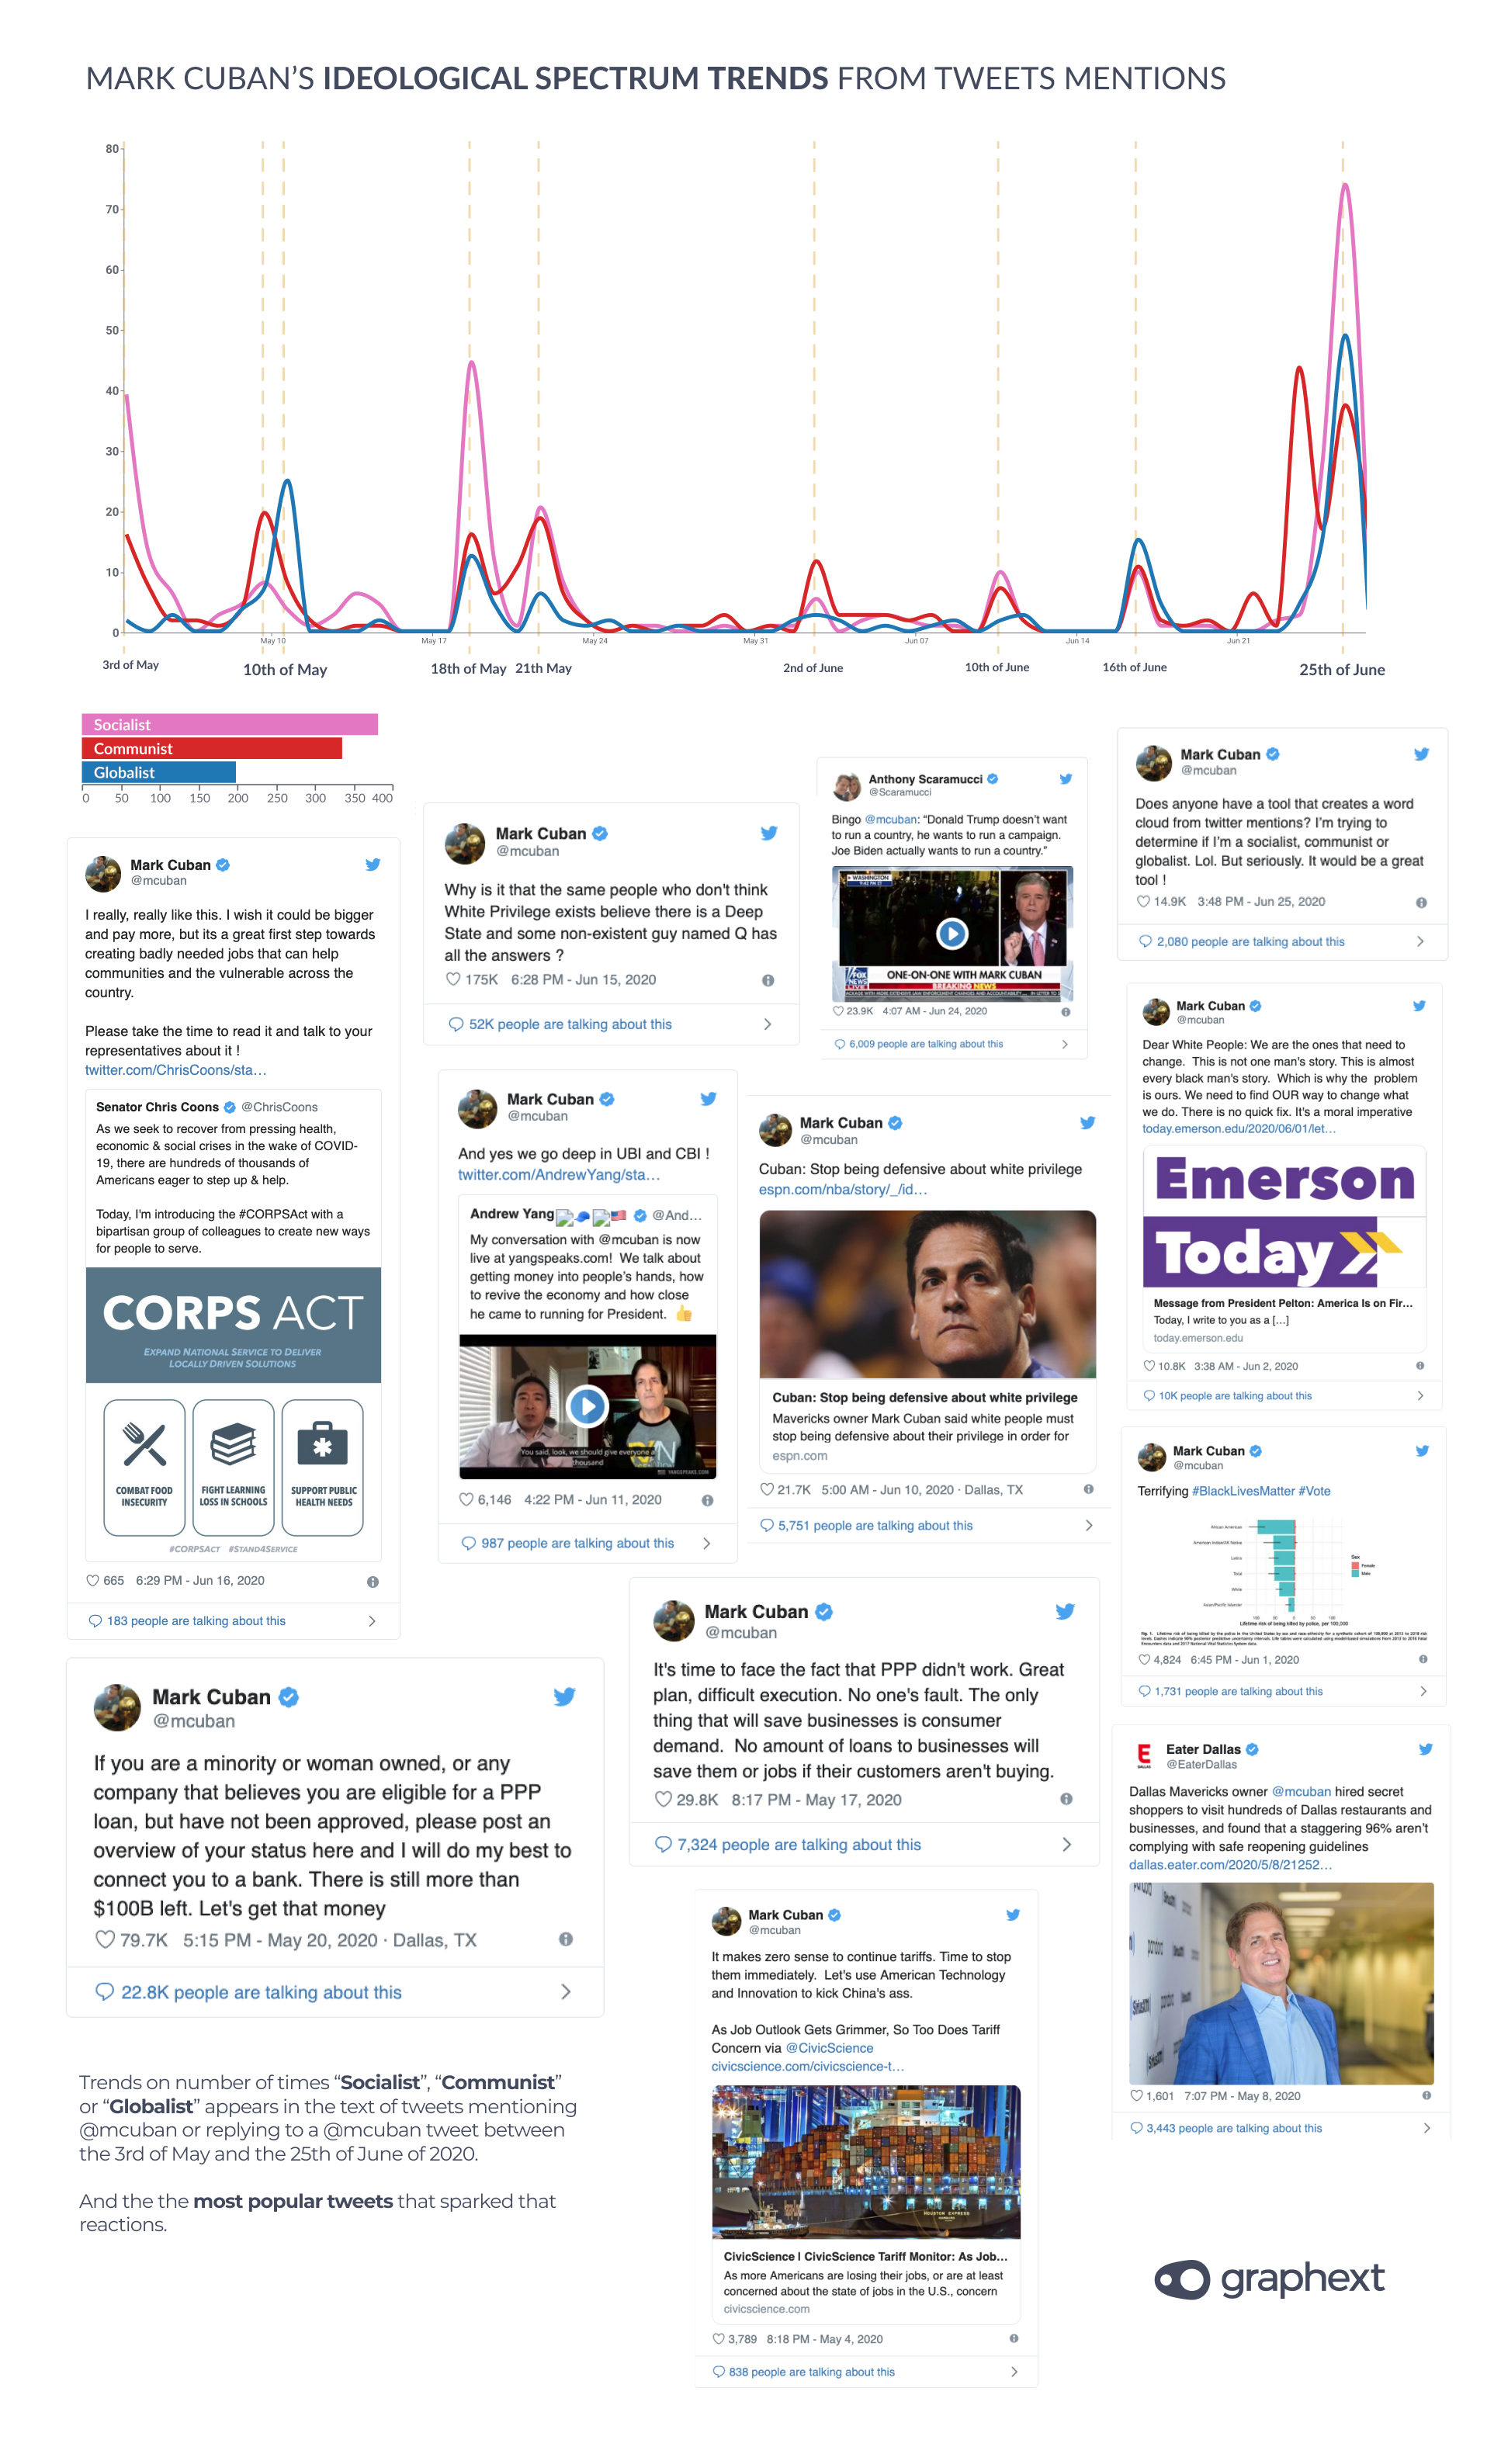 A time-series chart showing the tweets that associate Mark Cuban to specific ideologies.